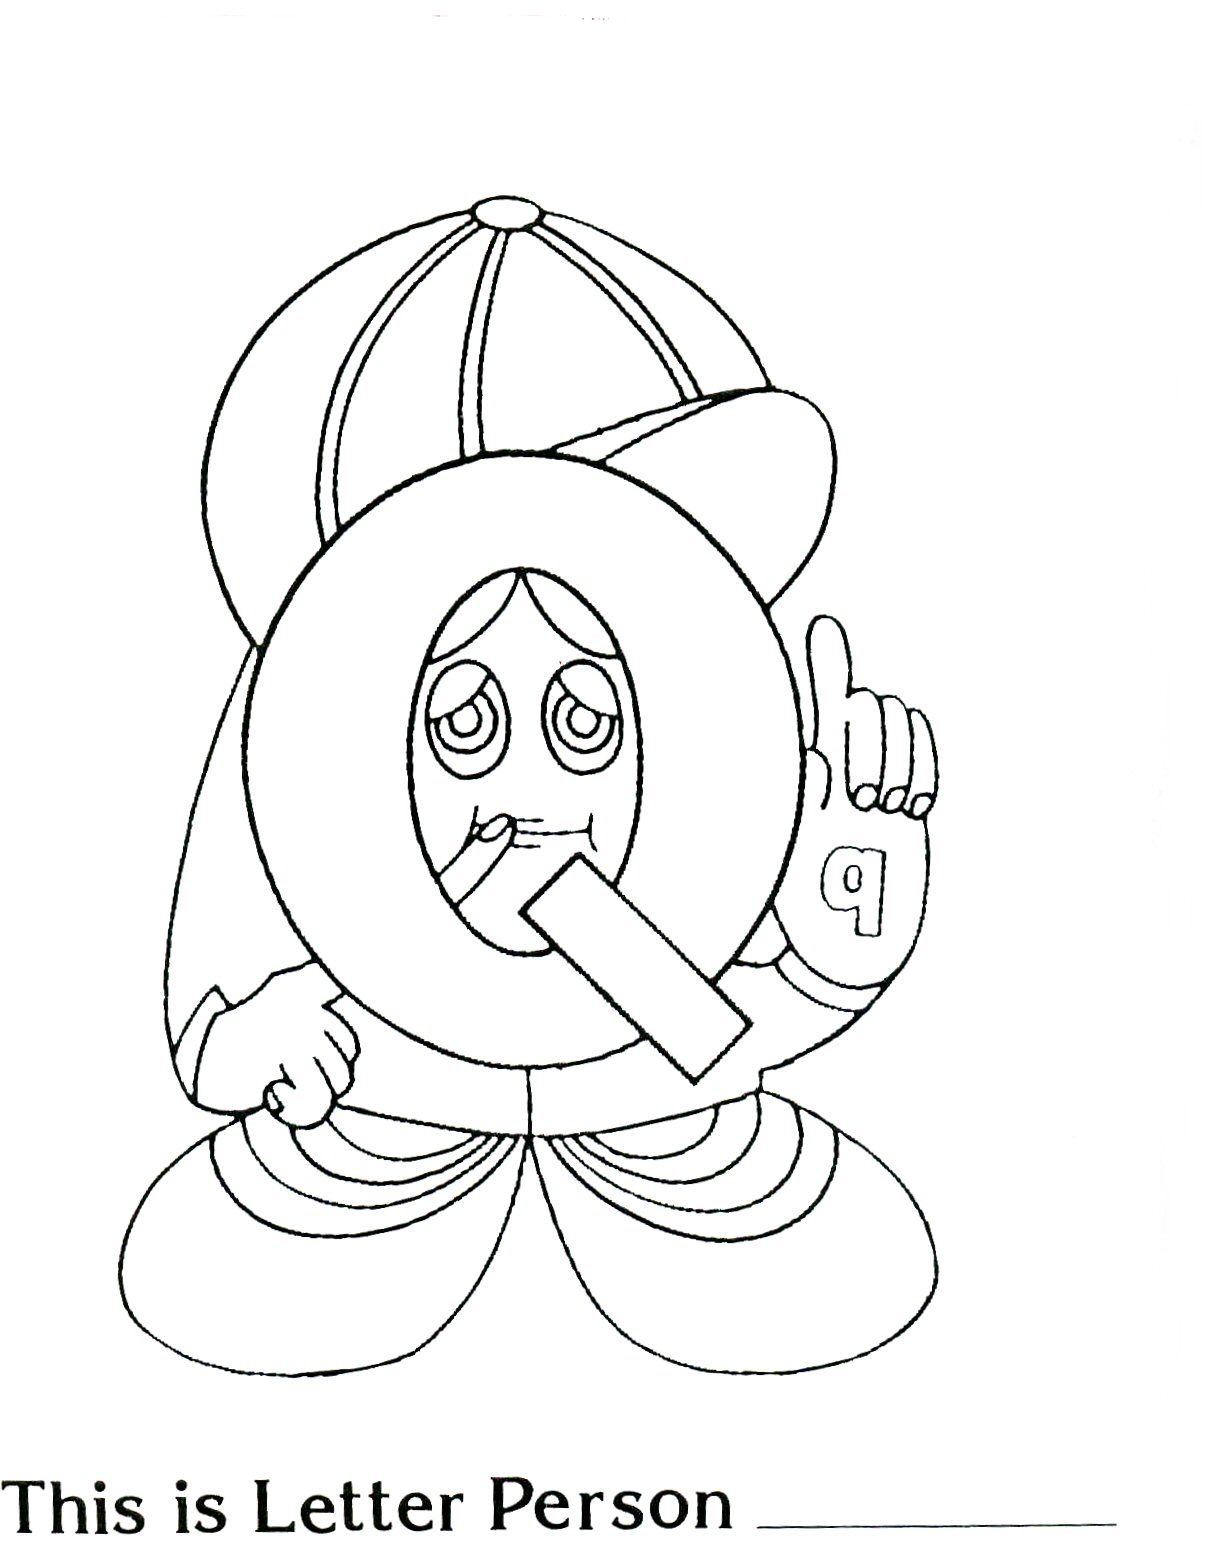 Brilliant Beginnings Preschool Letter Person Q Printable Coloring Page